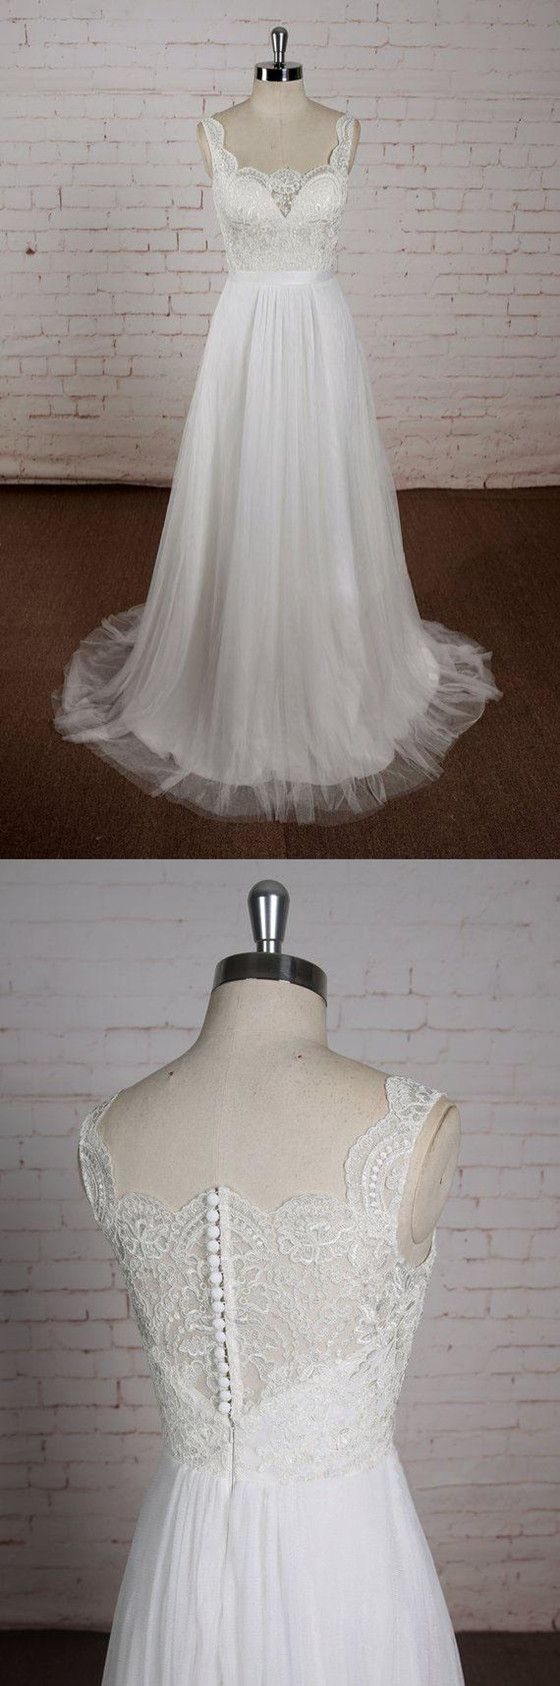 Simple and cheap wedding dresses  Aline Vneck Lace Top Tulle Skirt Sleeveless Simple Cheap Wedding